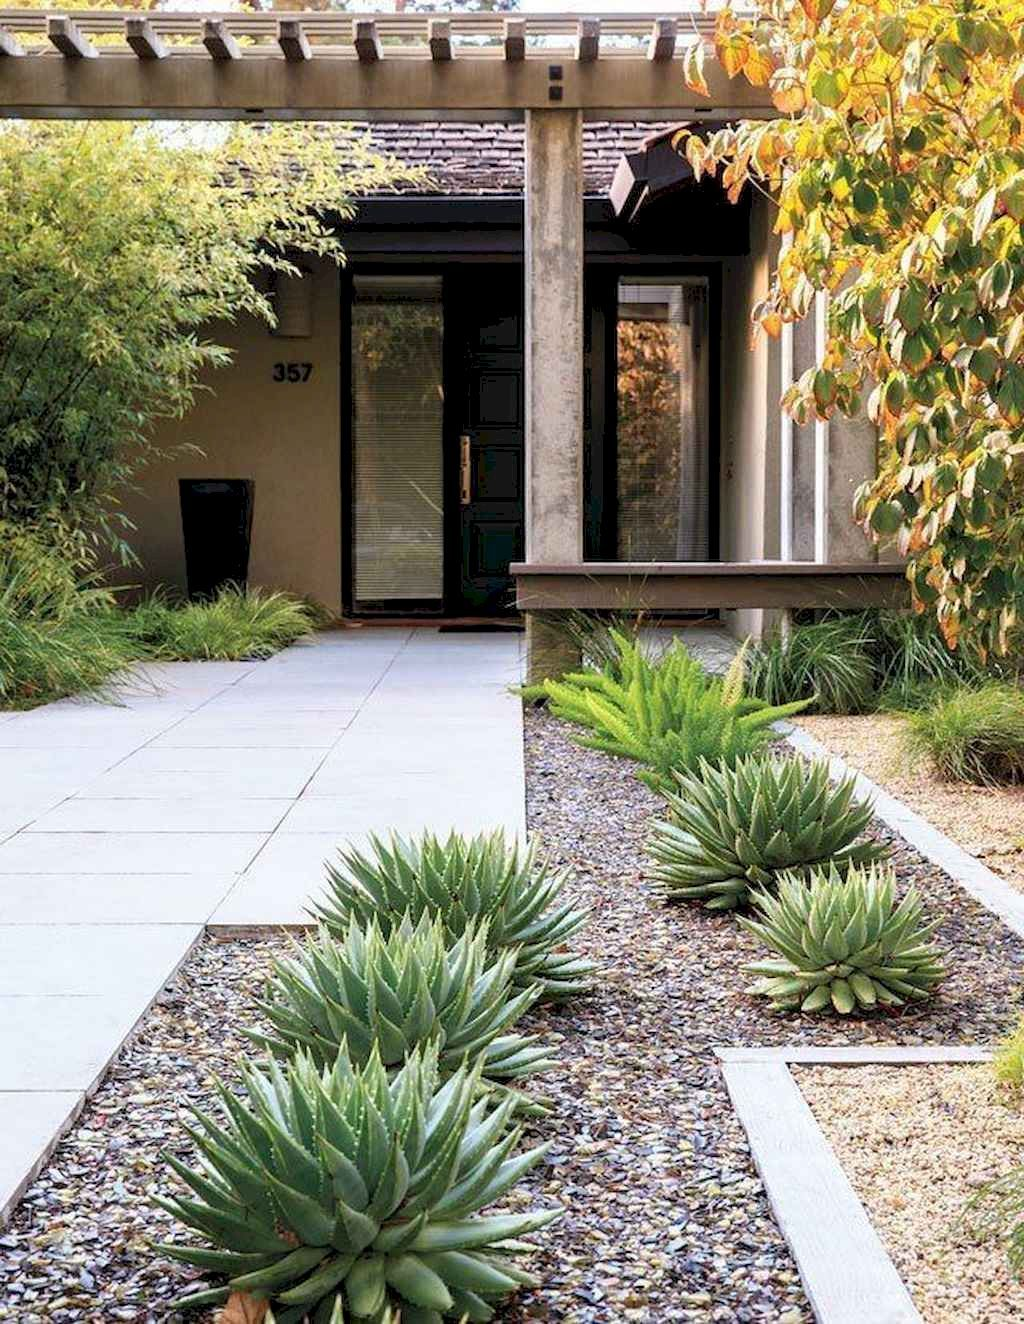 50 Simple Modern Front Yard Landscaping Ideas With Images Front Yard Landscaping Design Small Front Yard Landscaping Front Landscaping